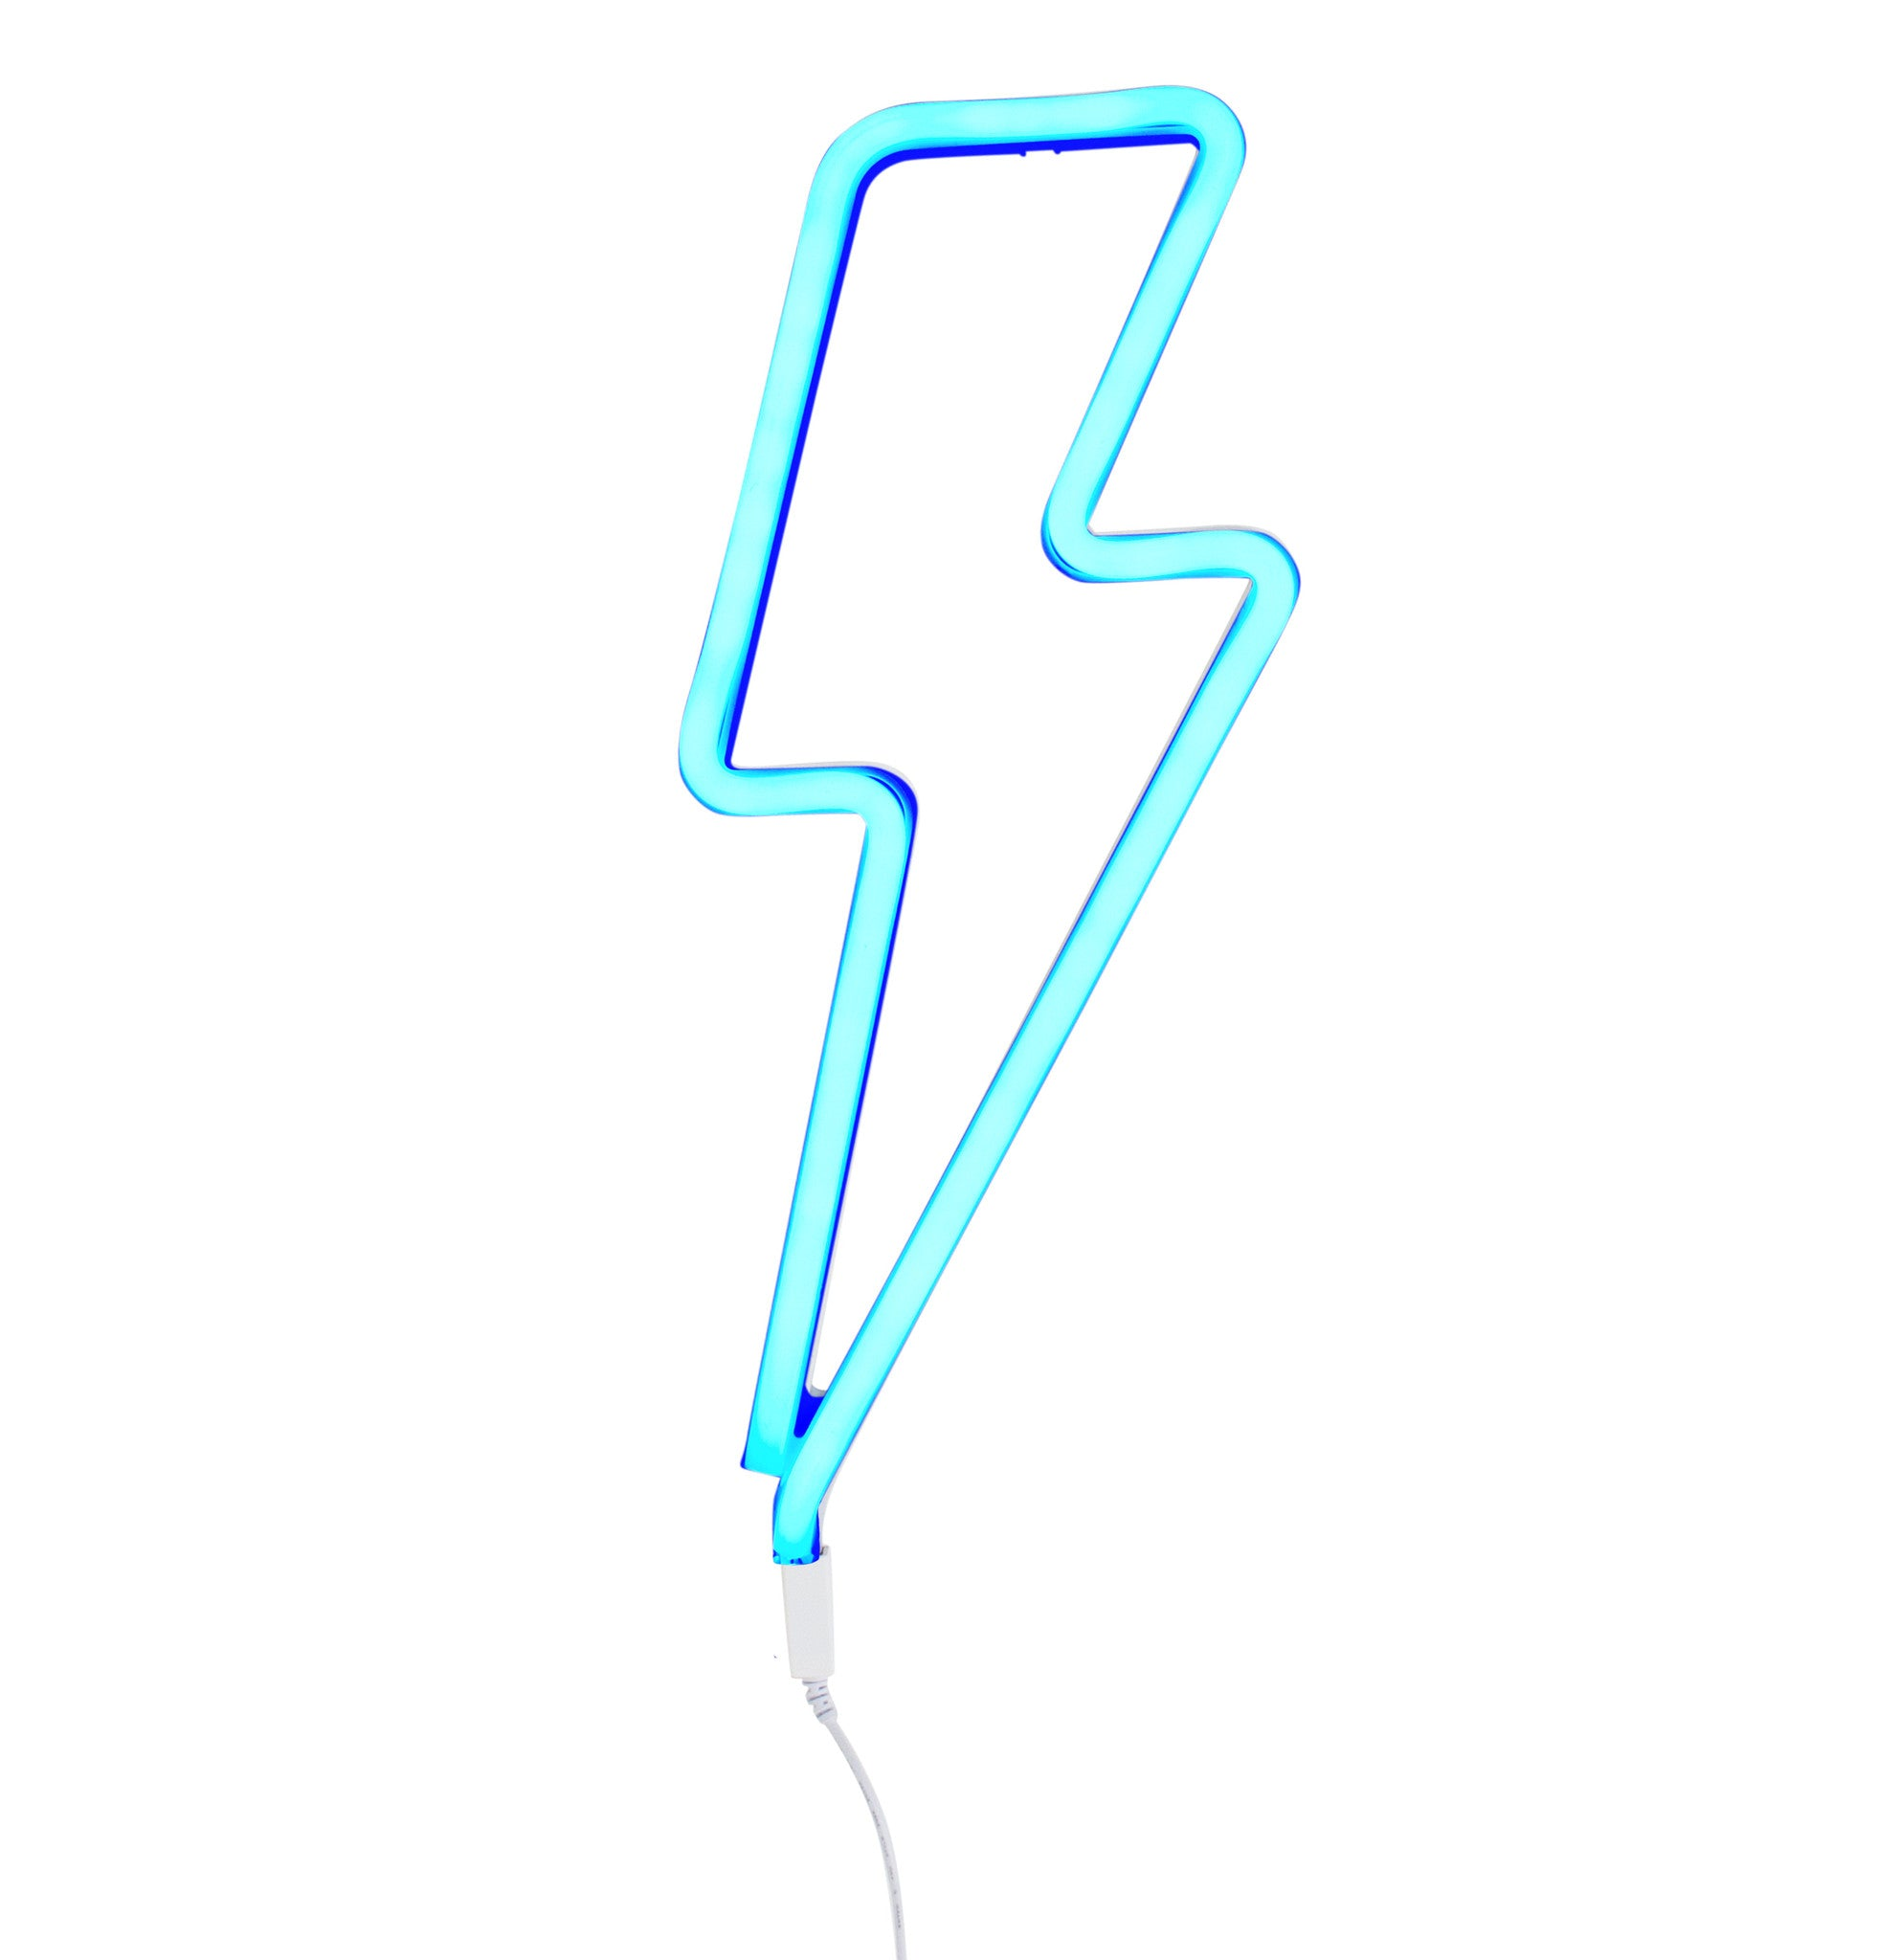 NEON LIGHTS - lightning bolt